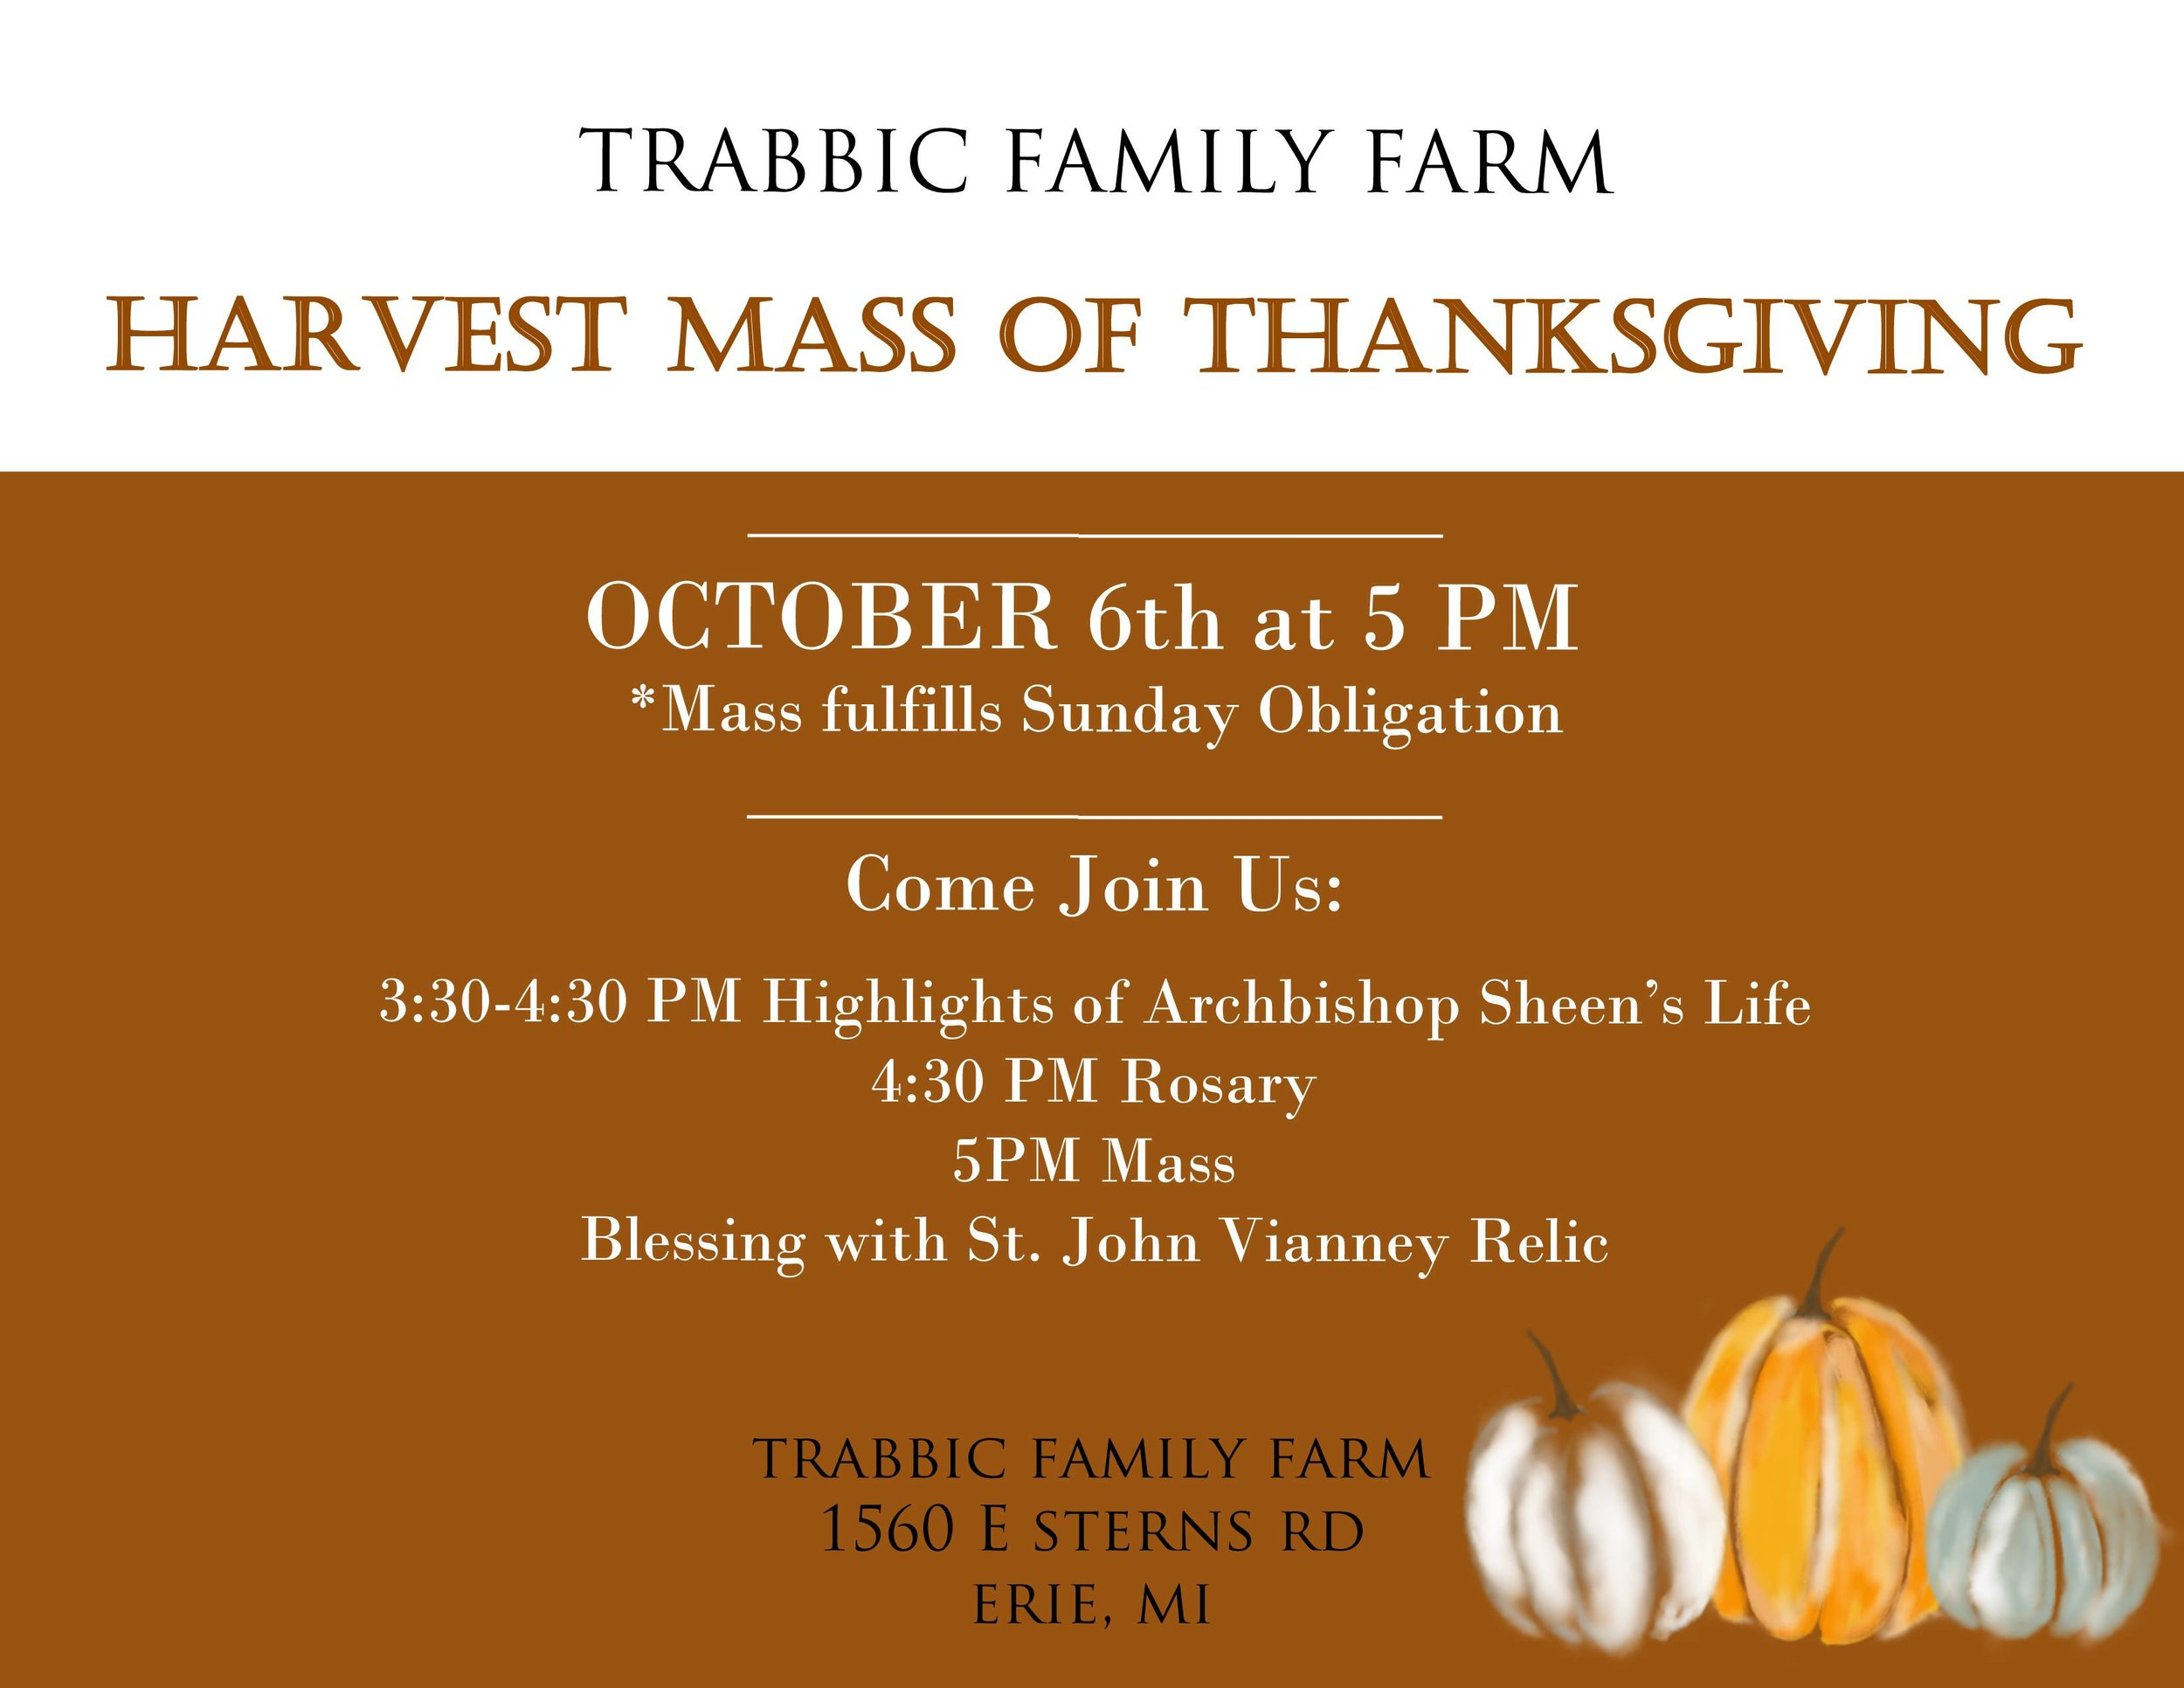 Join us on October 6th at 5pm in our big blue barn for a Catholic Mass to celebrate the harvest and give God thanks for a good harvest and vocations to the Holy Priesthood and Religious Life.